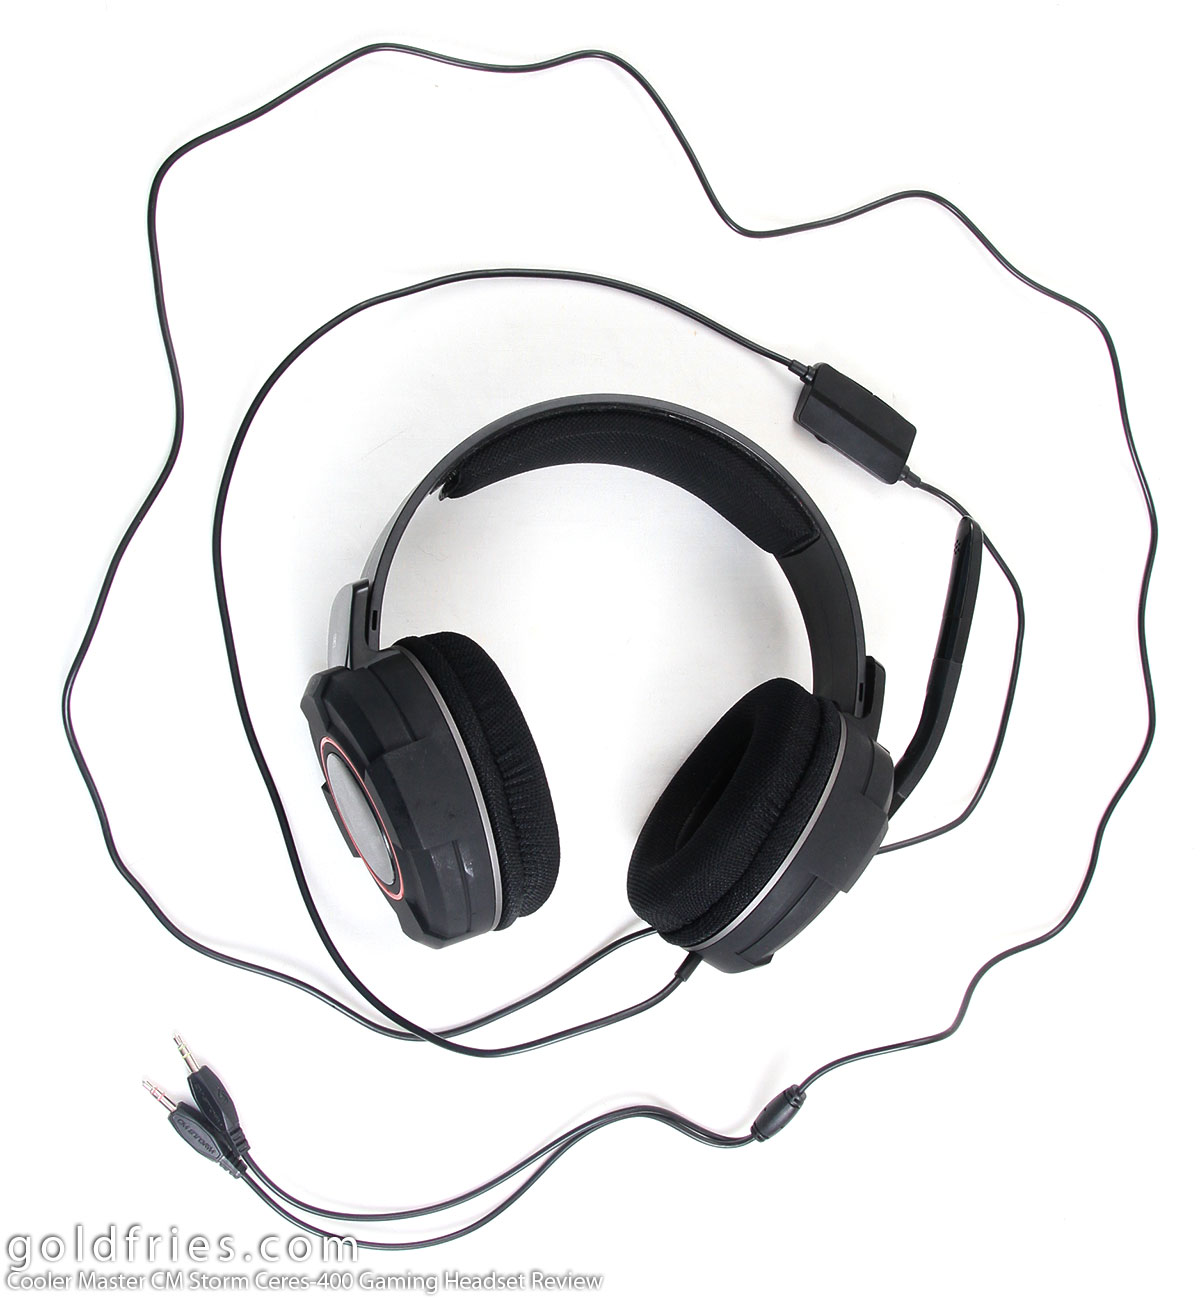 Cooler Master CM Storm Ceres-400 Gaming Headset Review 18